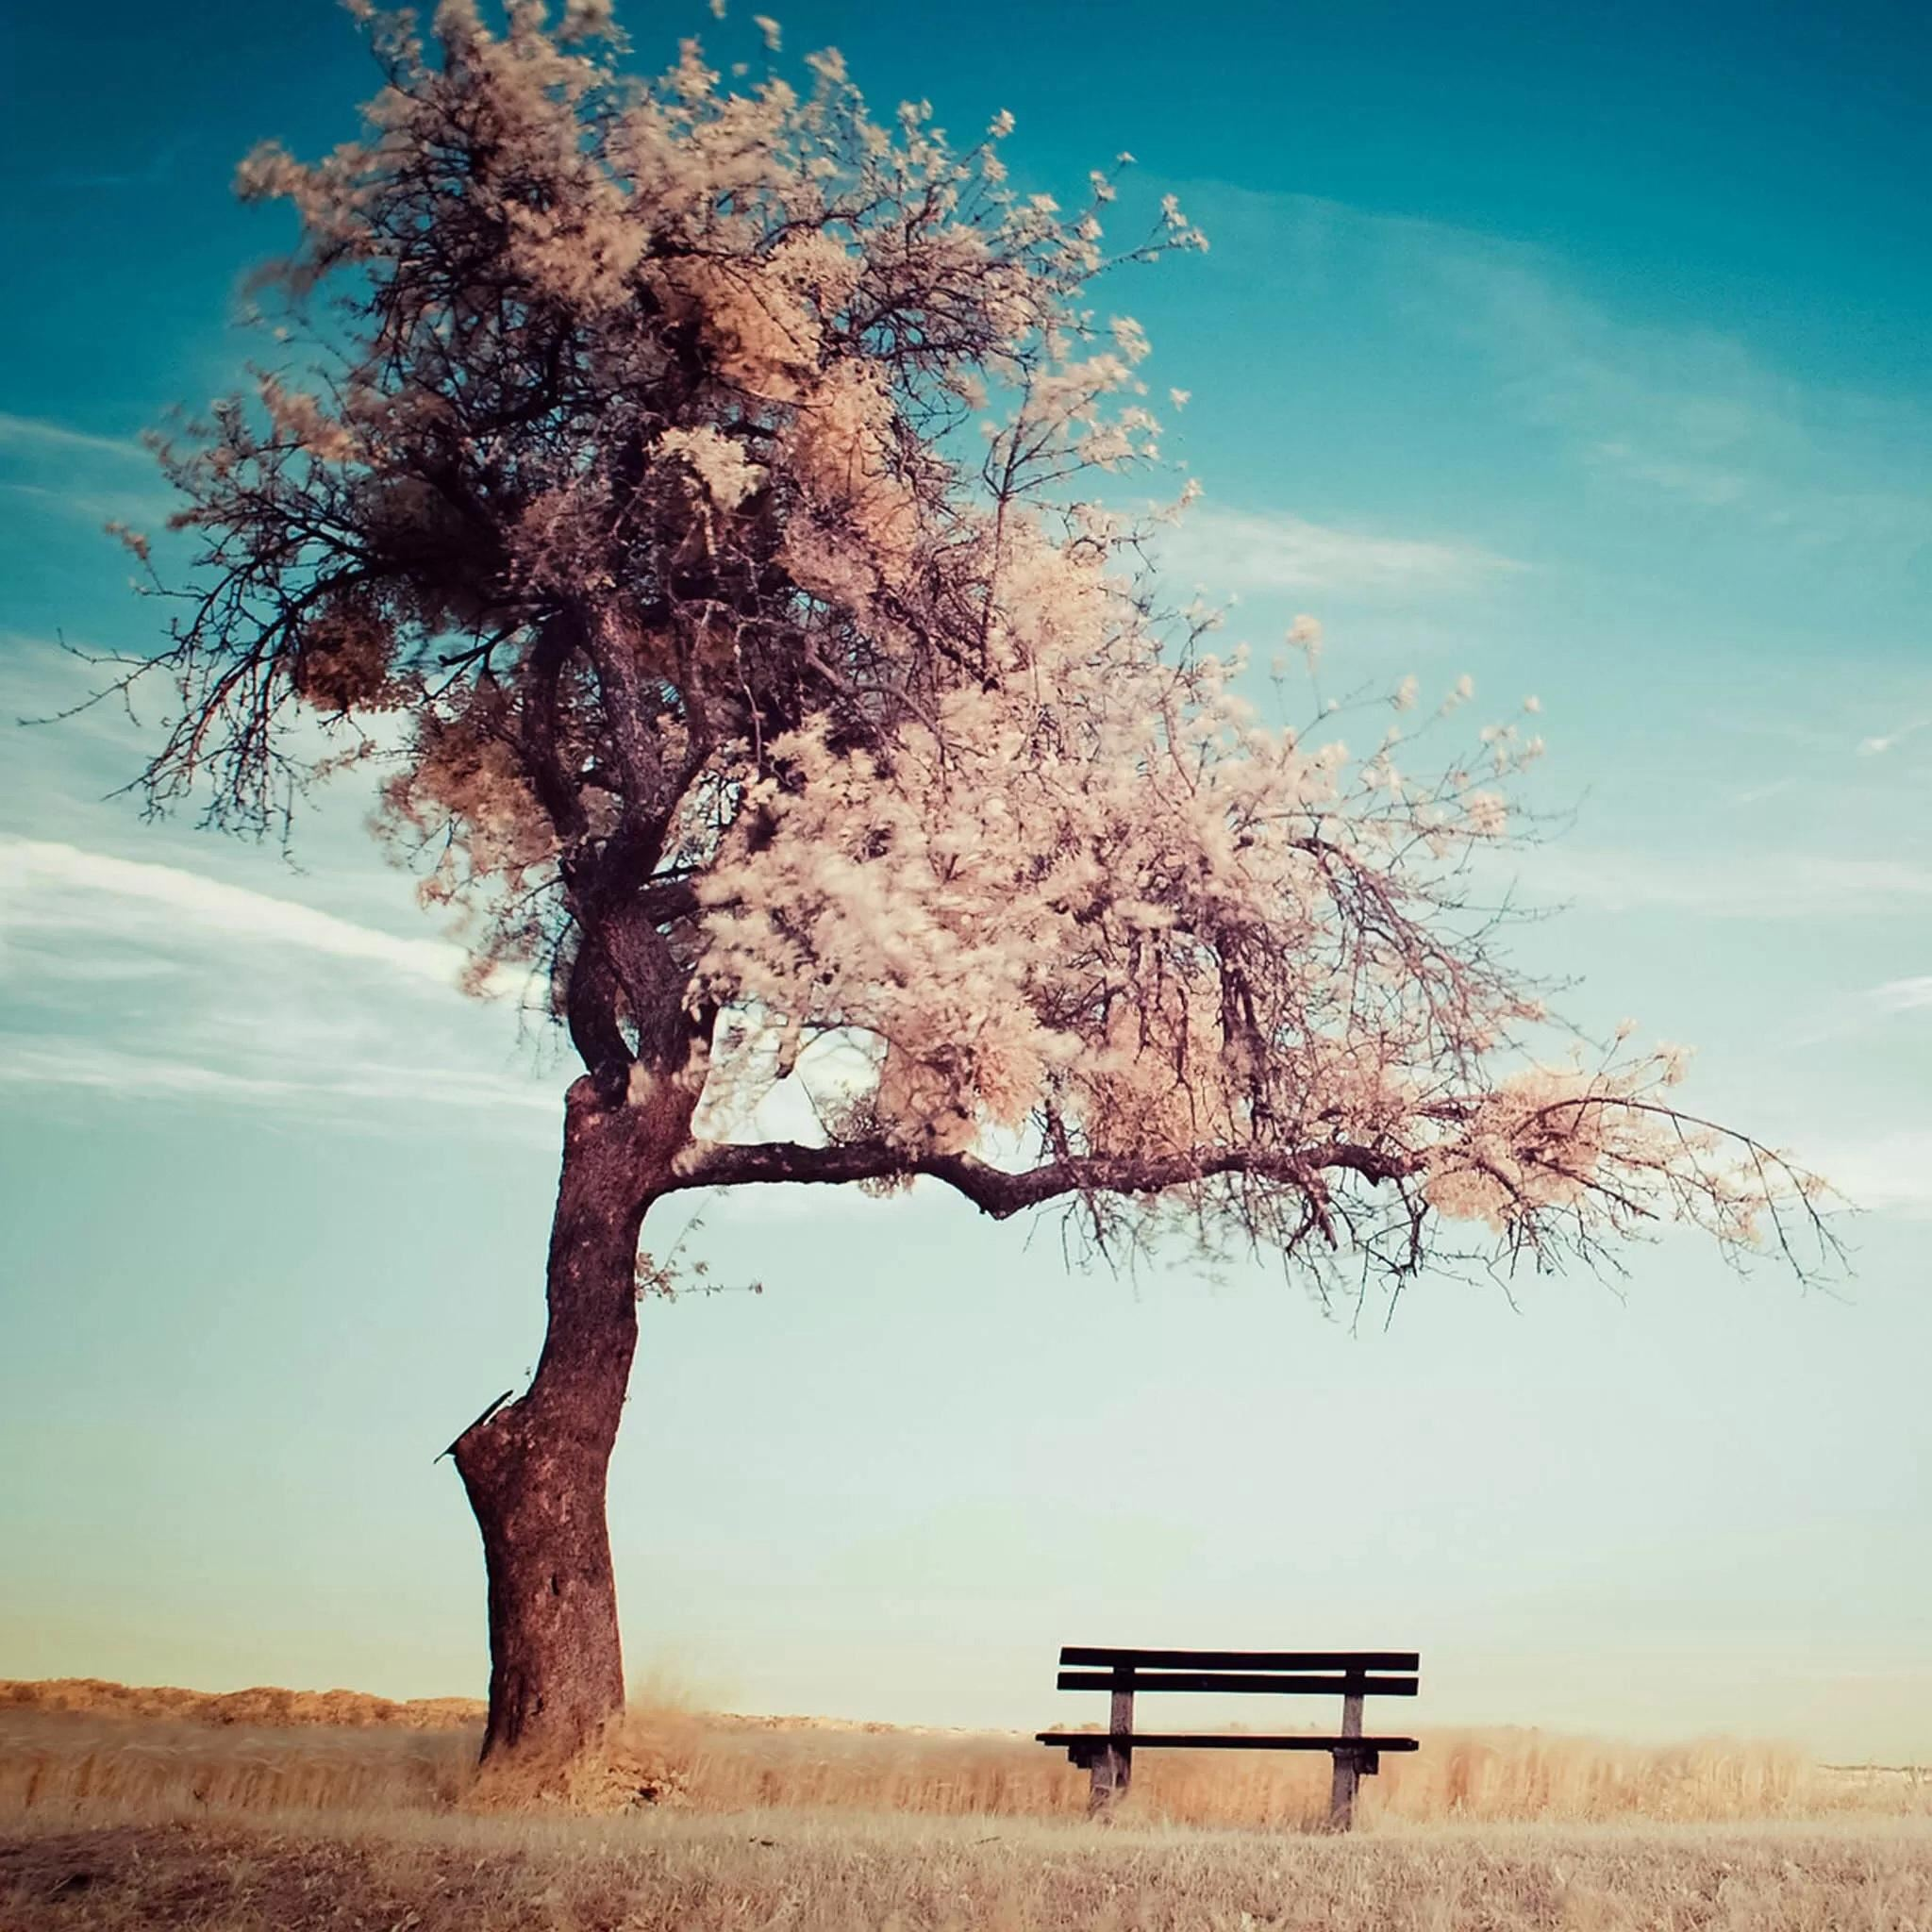 Lonely Beanch Under Blossom Tree iPad Air wallpaper